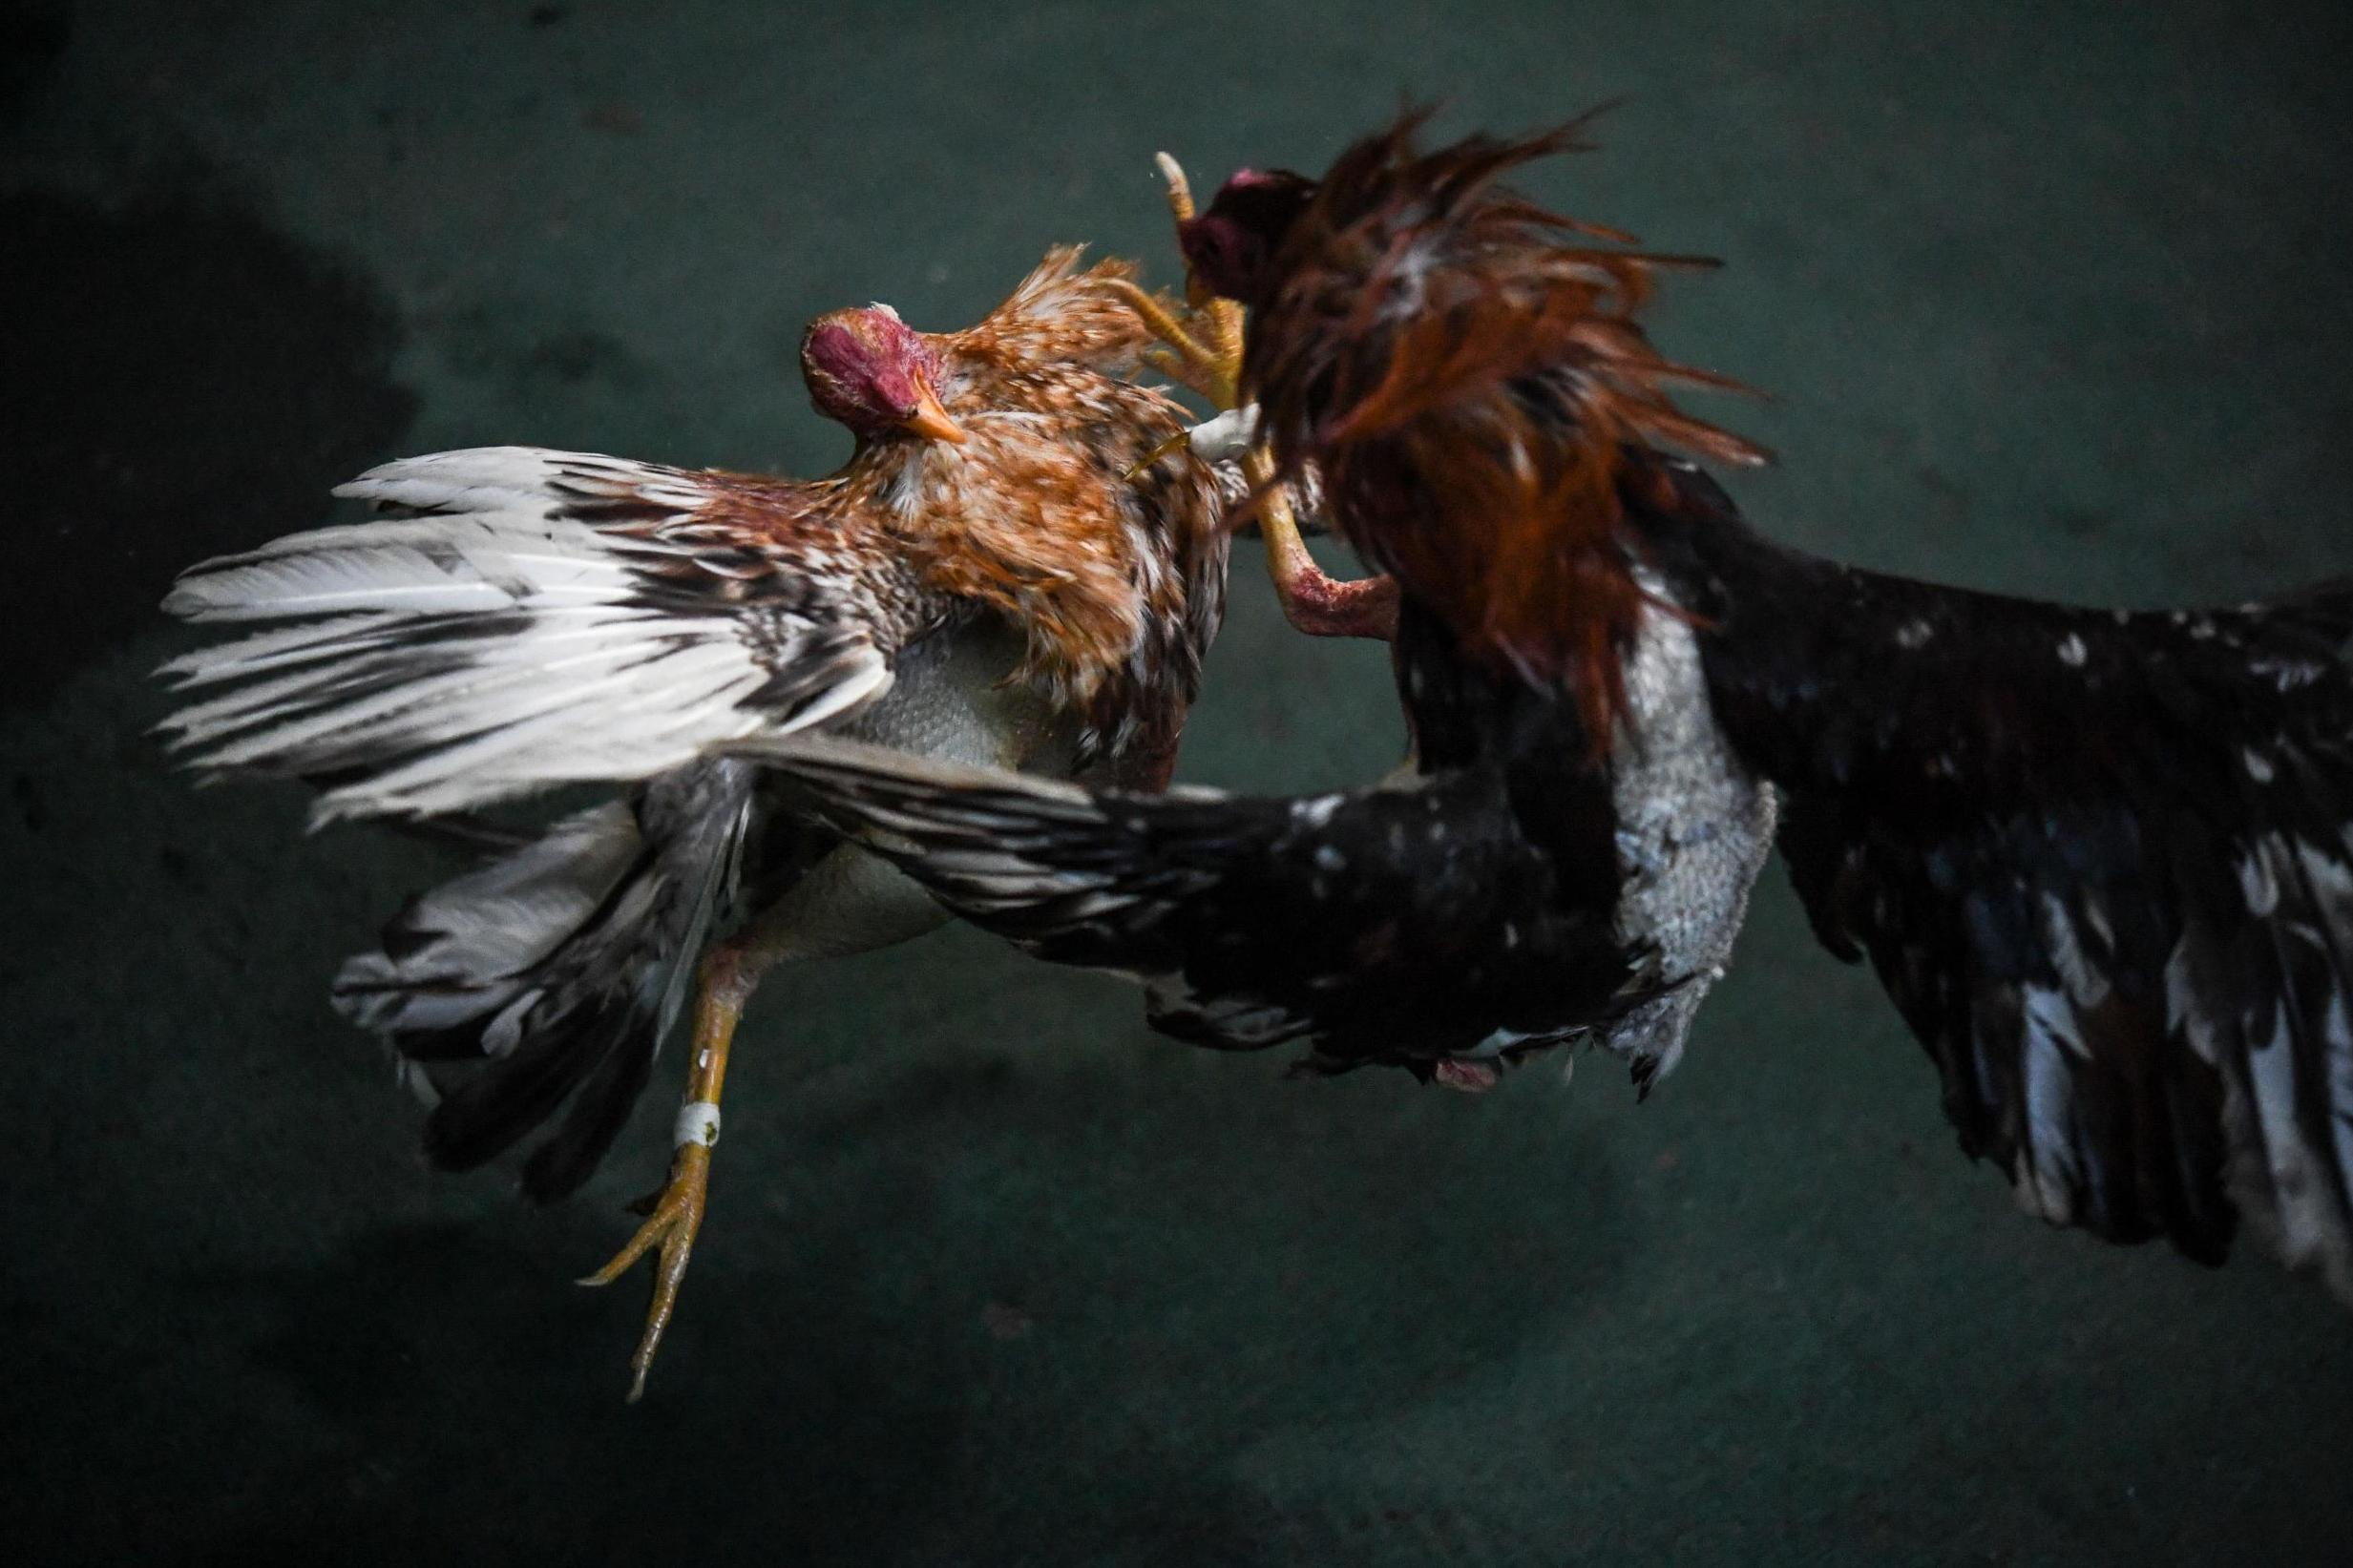 Police officer killed in Philippines after being slashed by rooster at illegal cockfight